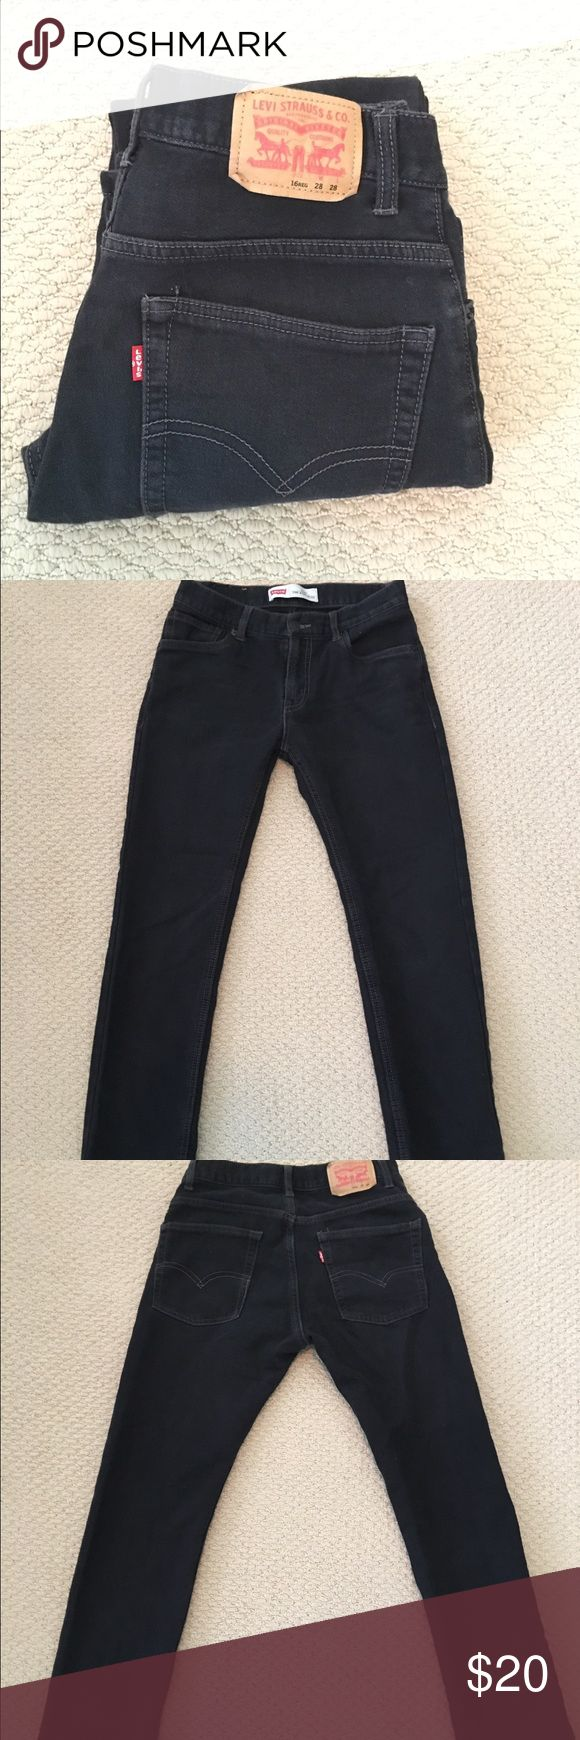 SALE! EUC Levi's 511 'The Knit' Jeans 28x28 These men's Levi's 511 slim jeans are in excellent condition. They're knit denim making them very comfortable and the faded black color is perfect for everyday where! Size 28x28 Levi's Jeans Slim